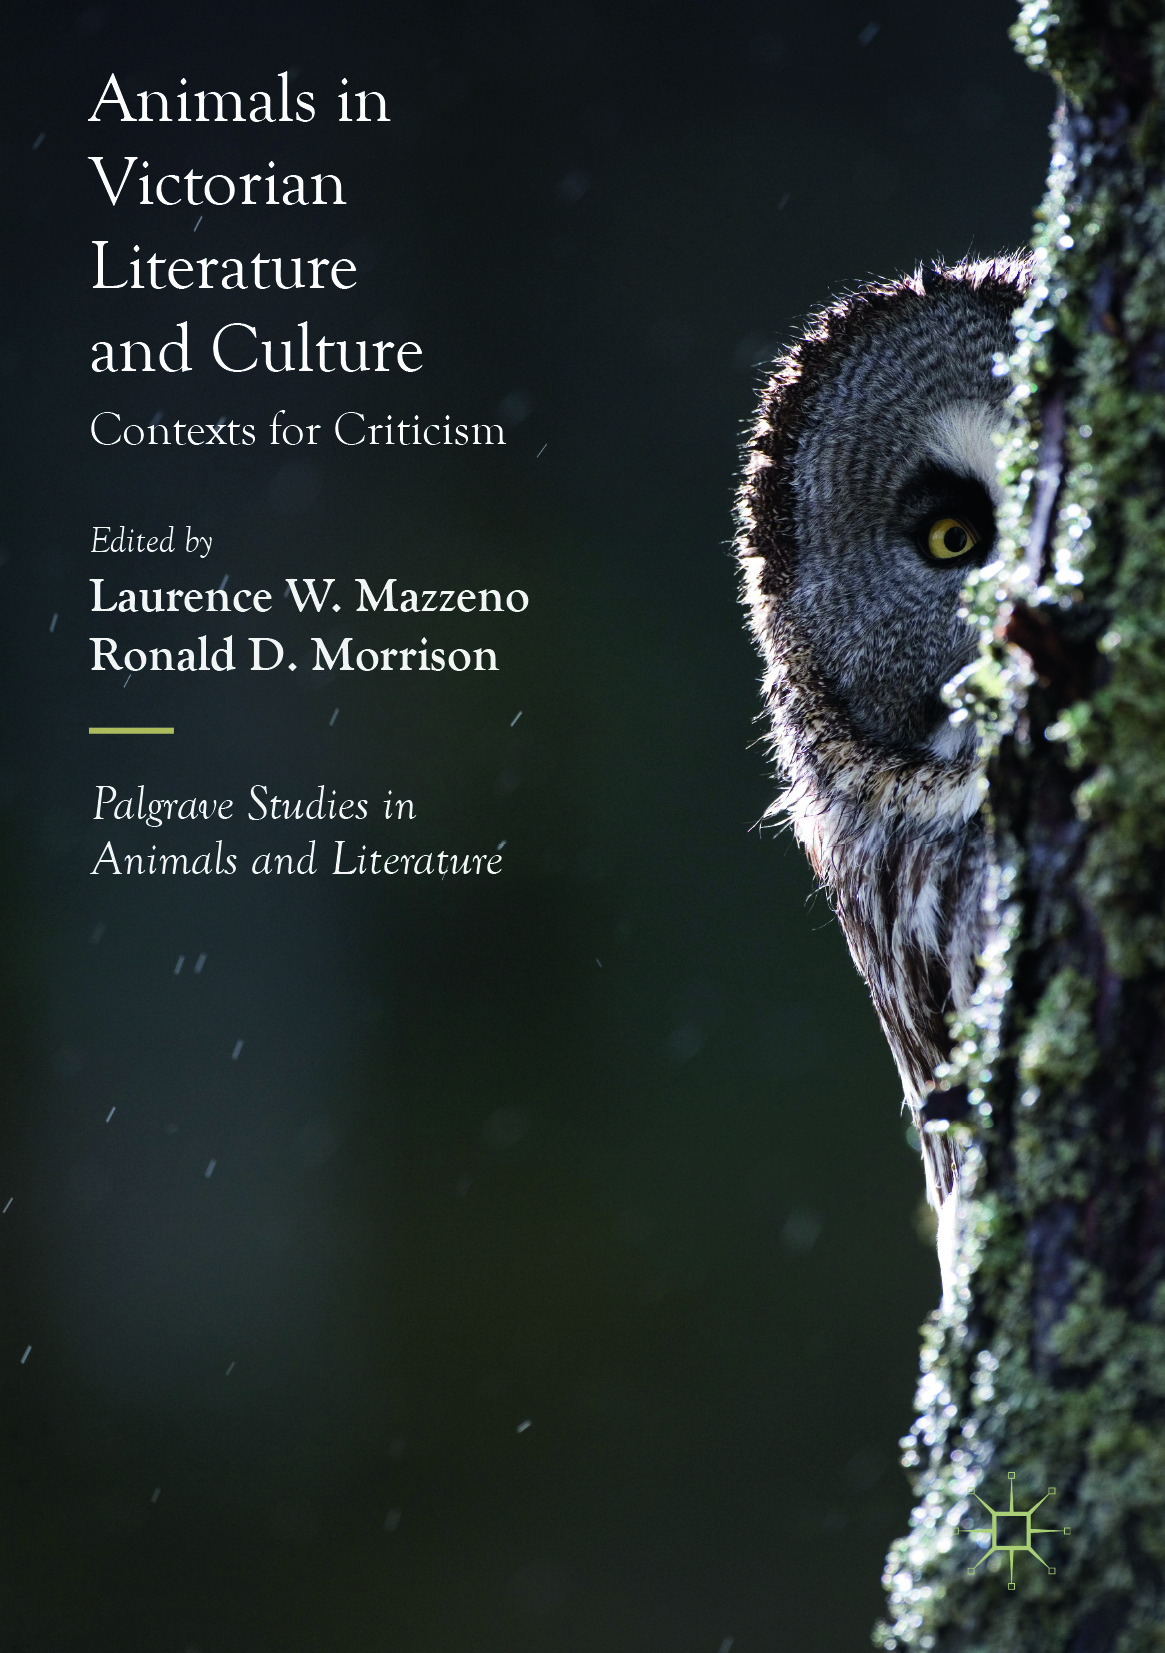 Mazzeno, Laurence W. - Animals in Victorian Literature and Culture, ebook